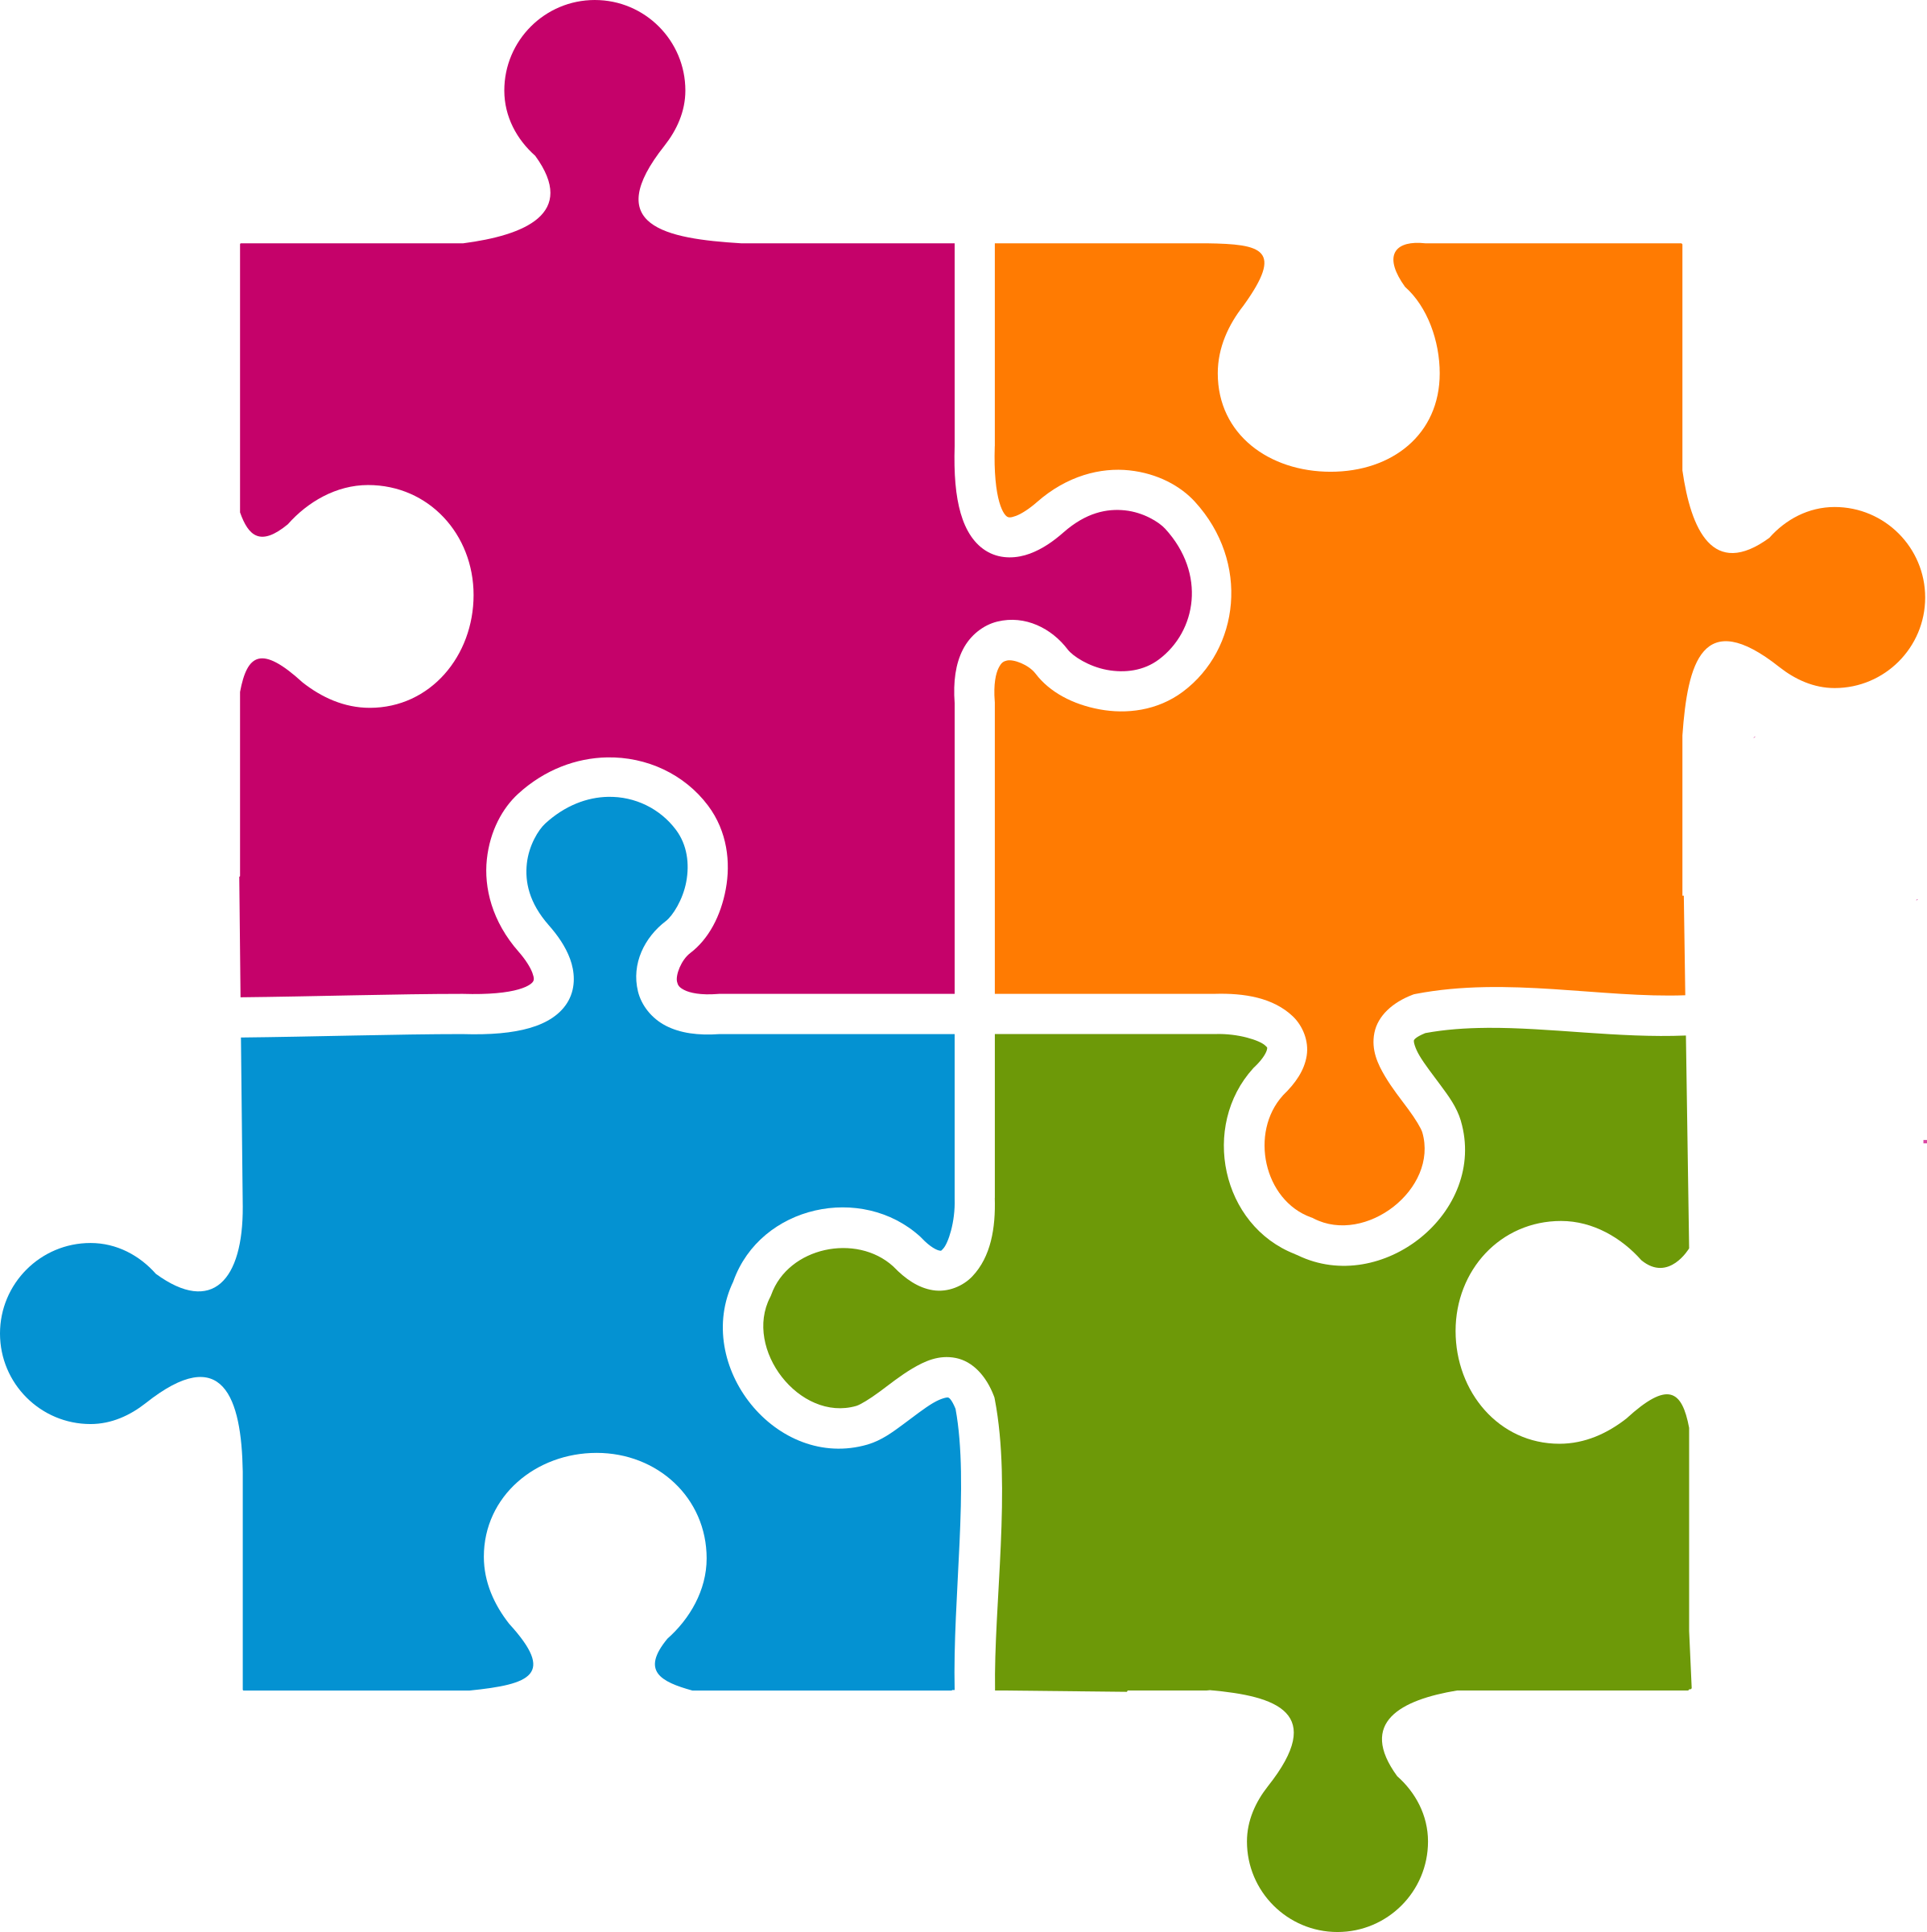 Puzzle clipart animated. Big image png